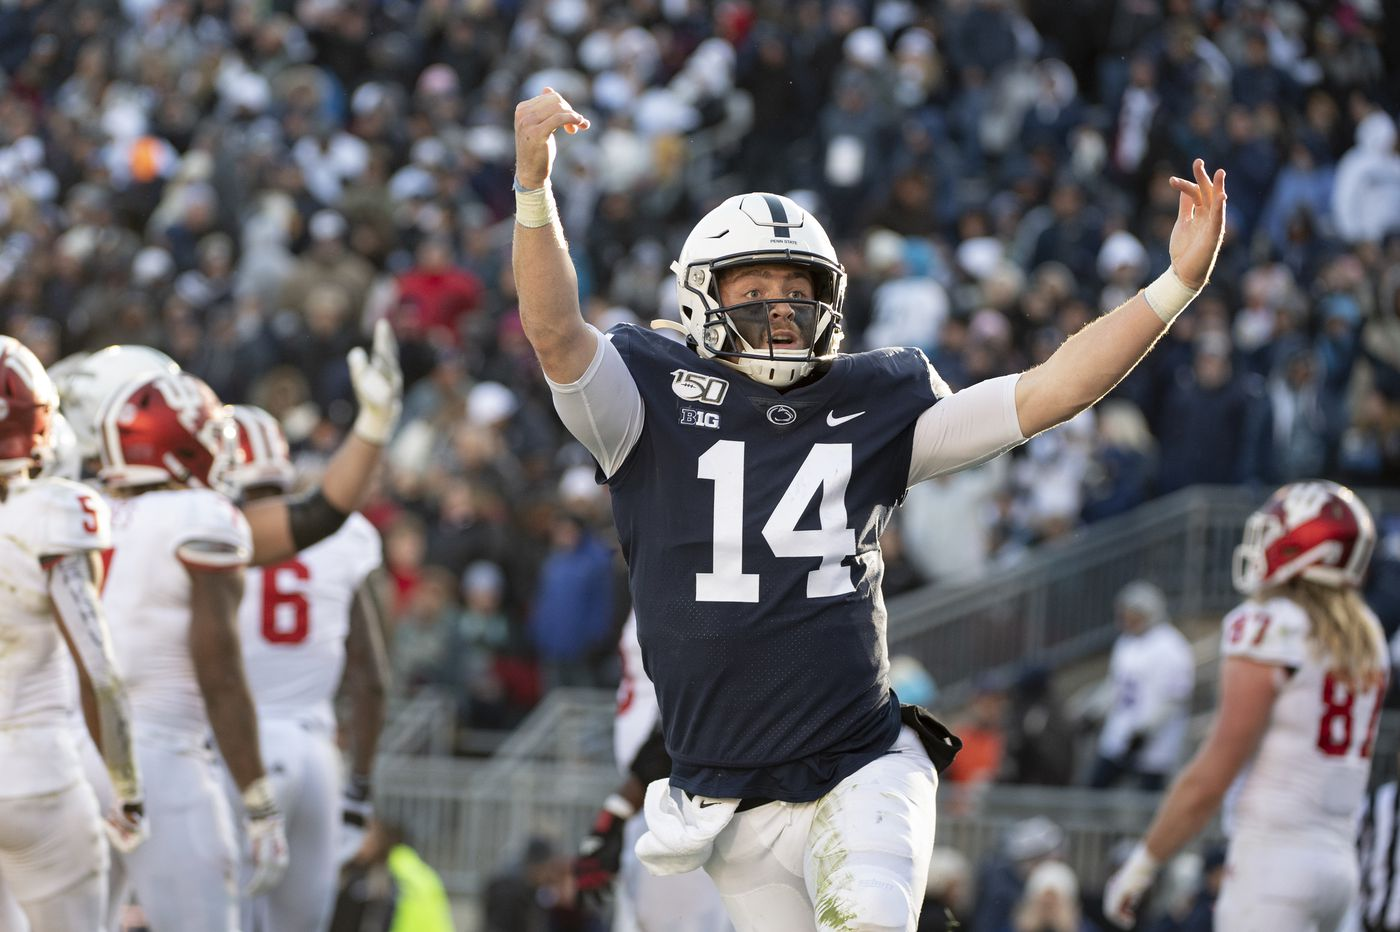 Penn State at Ohio State: Five things to watch